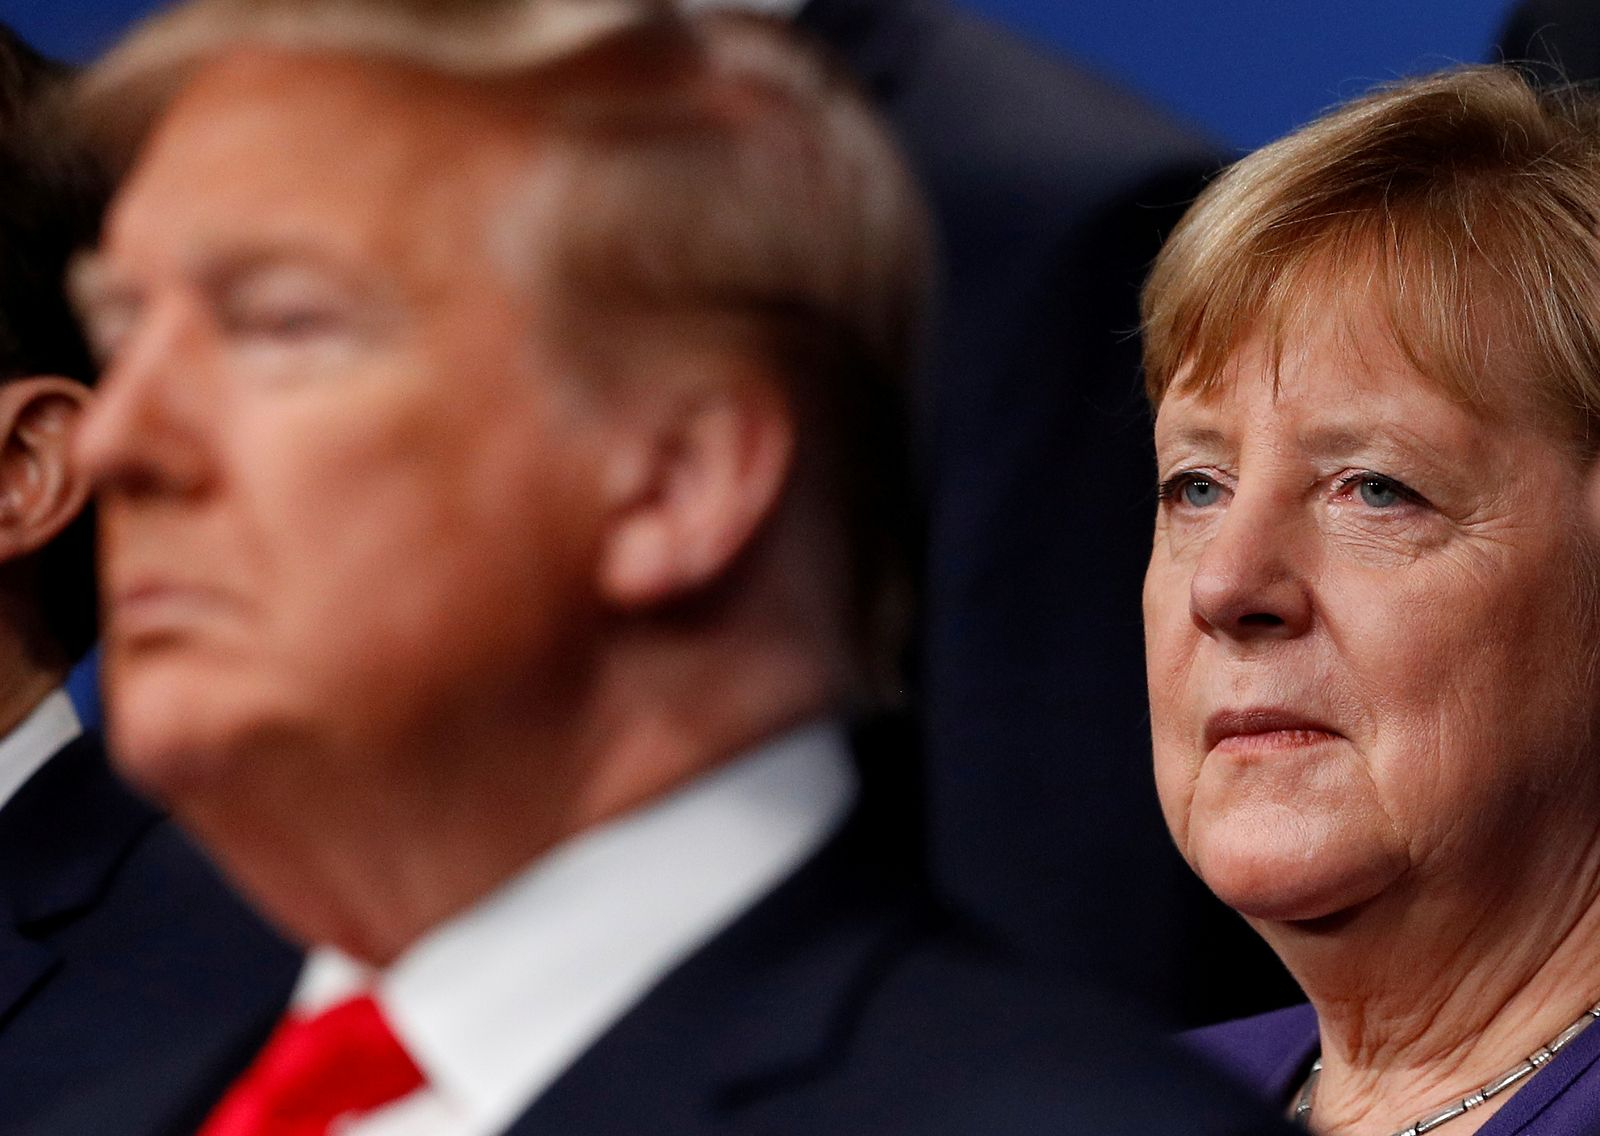 FILE PHOTO: U.S. President Donald Trump and Germany's Chancellor Angela Merkel pose for the family photo during the annual NATO heads of government summit at the Grove Hotel in Watford